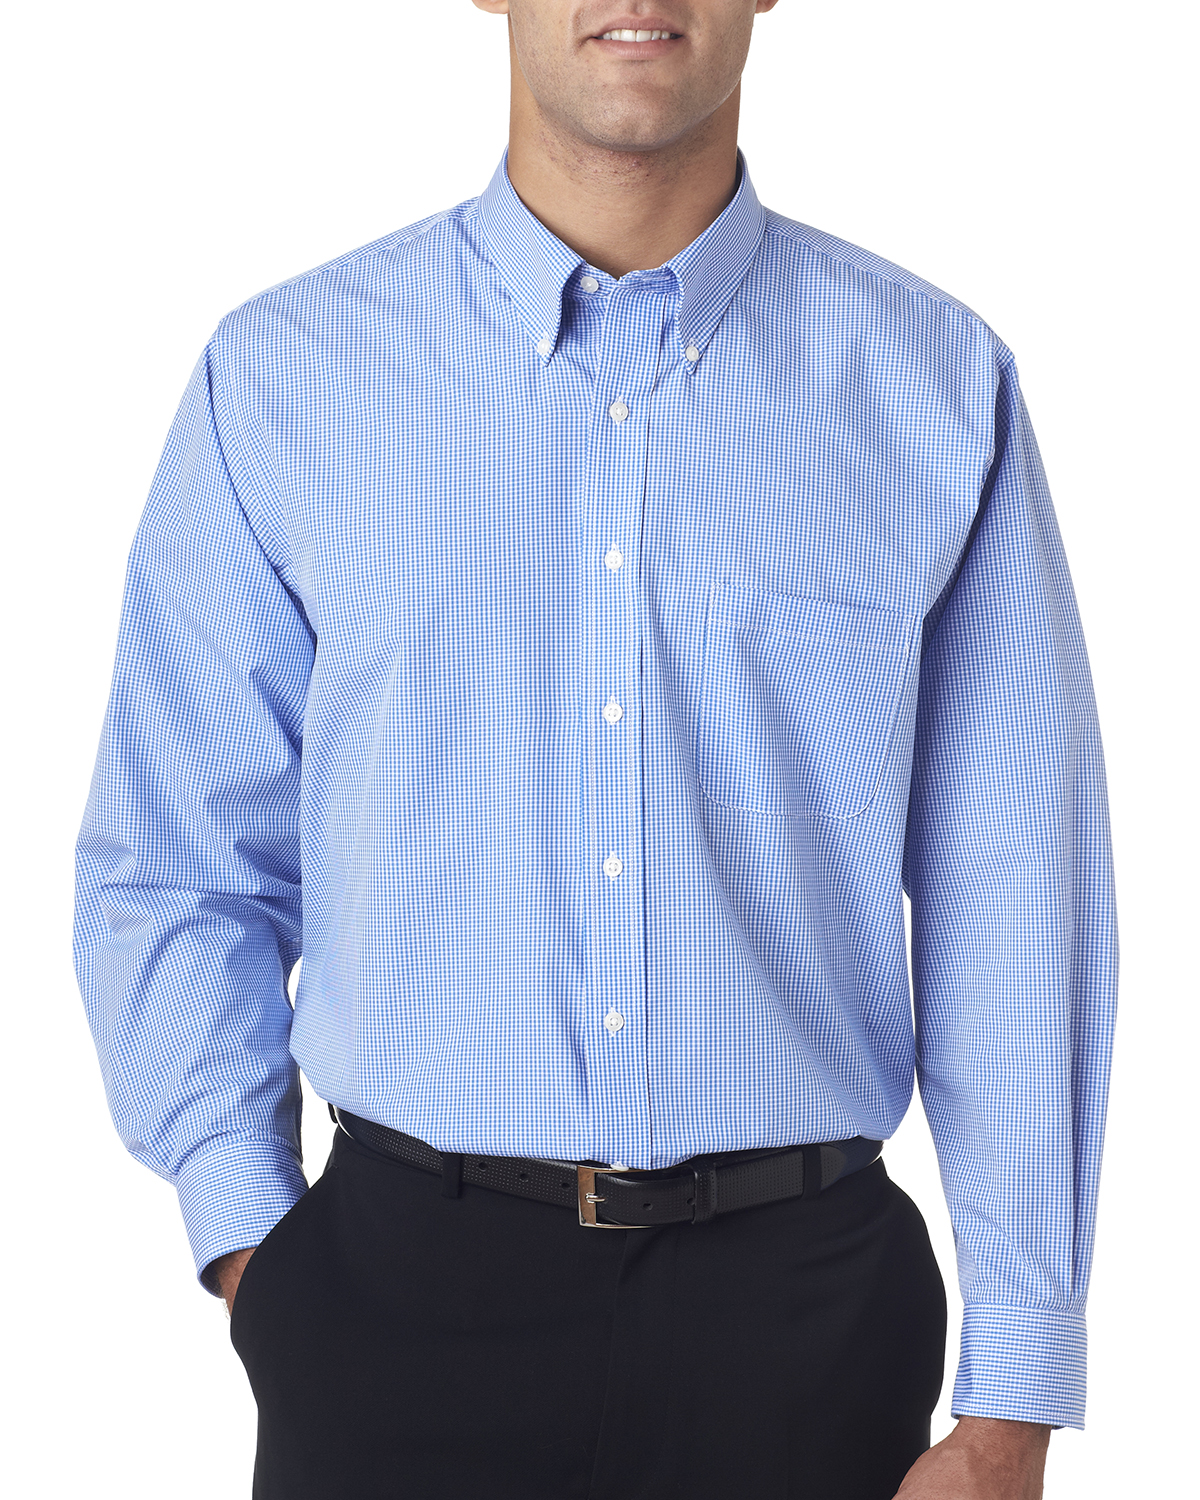 Van Heusen V0225 Mens Long Sleeve Yarn Dyed Gingham Check Shirt